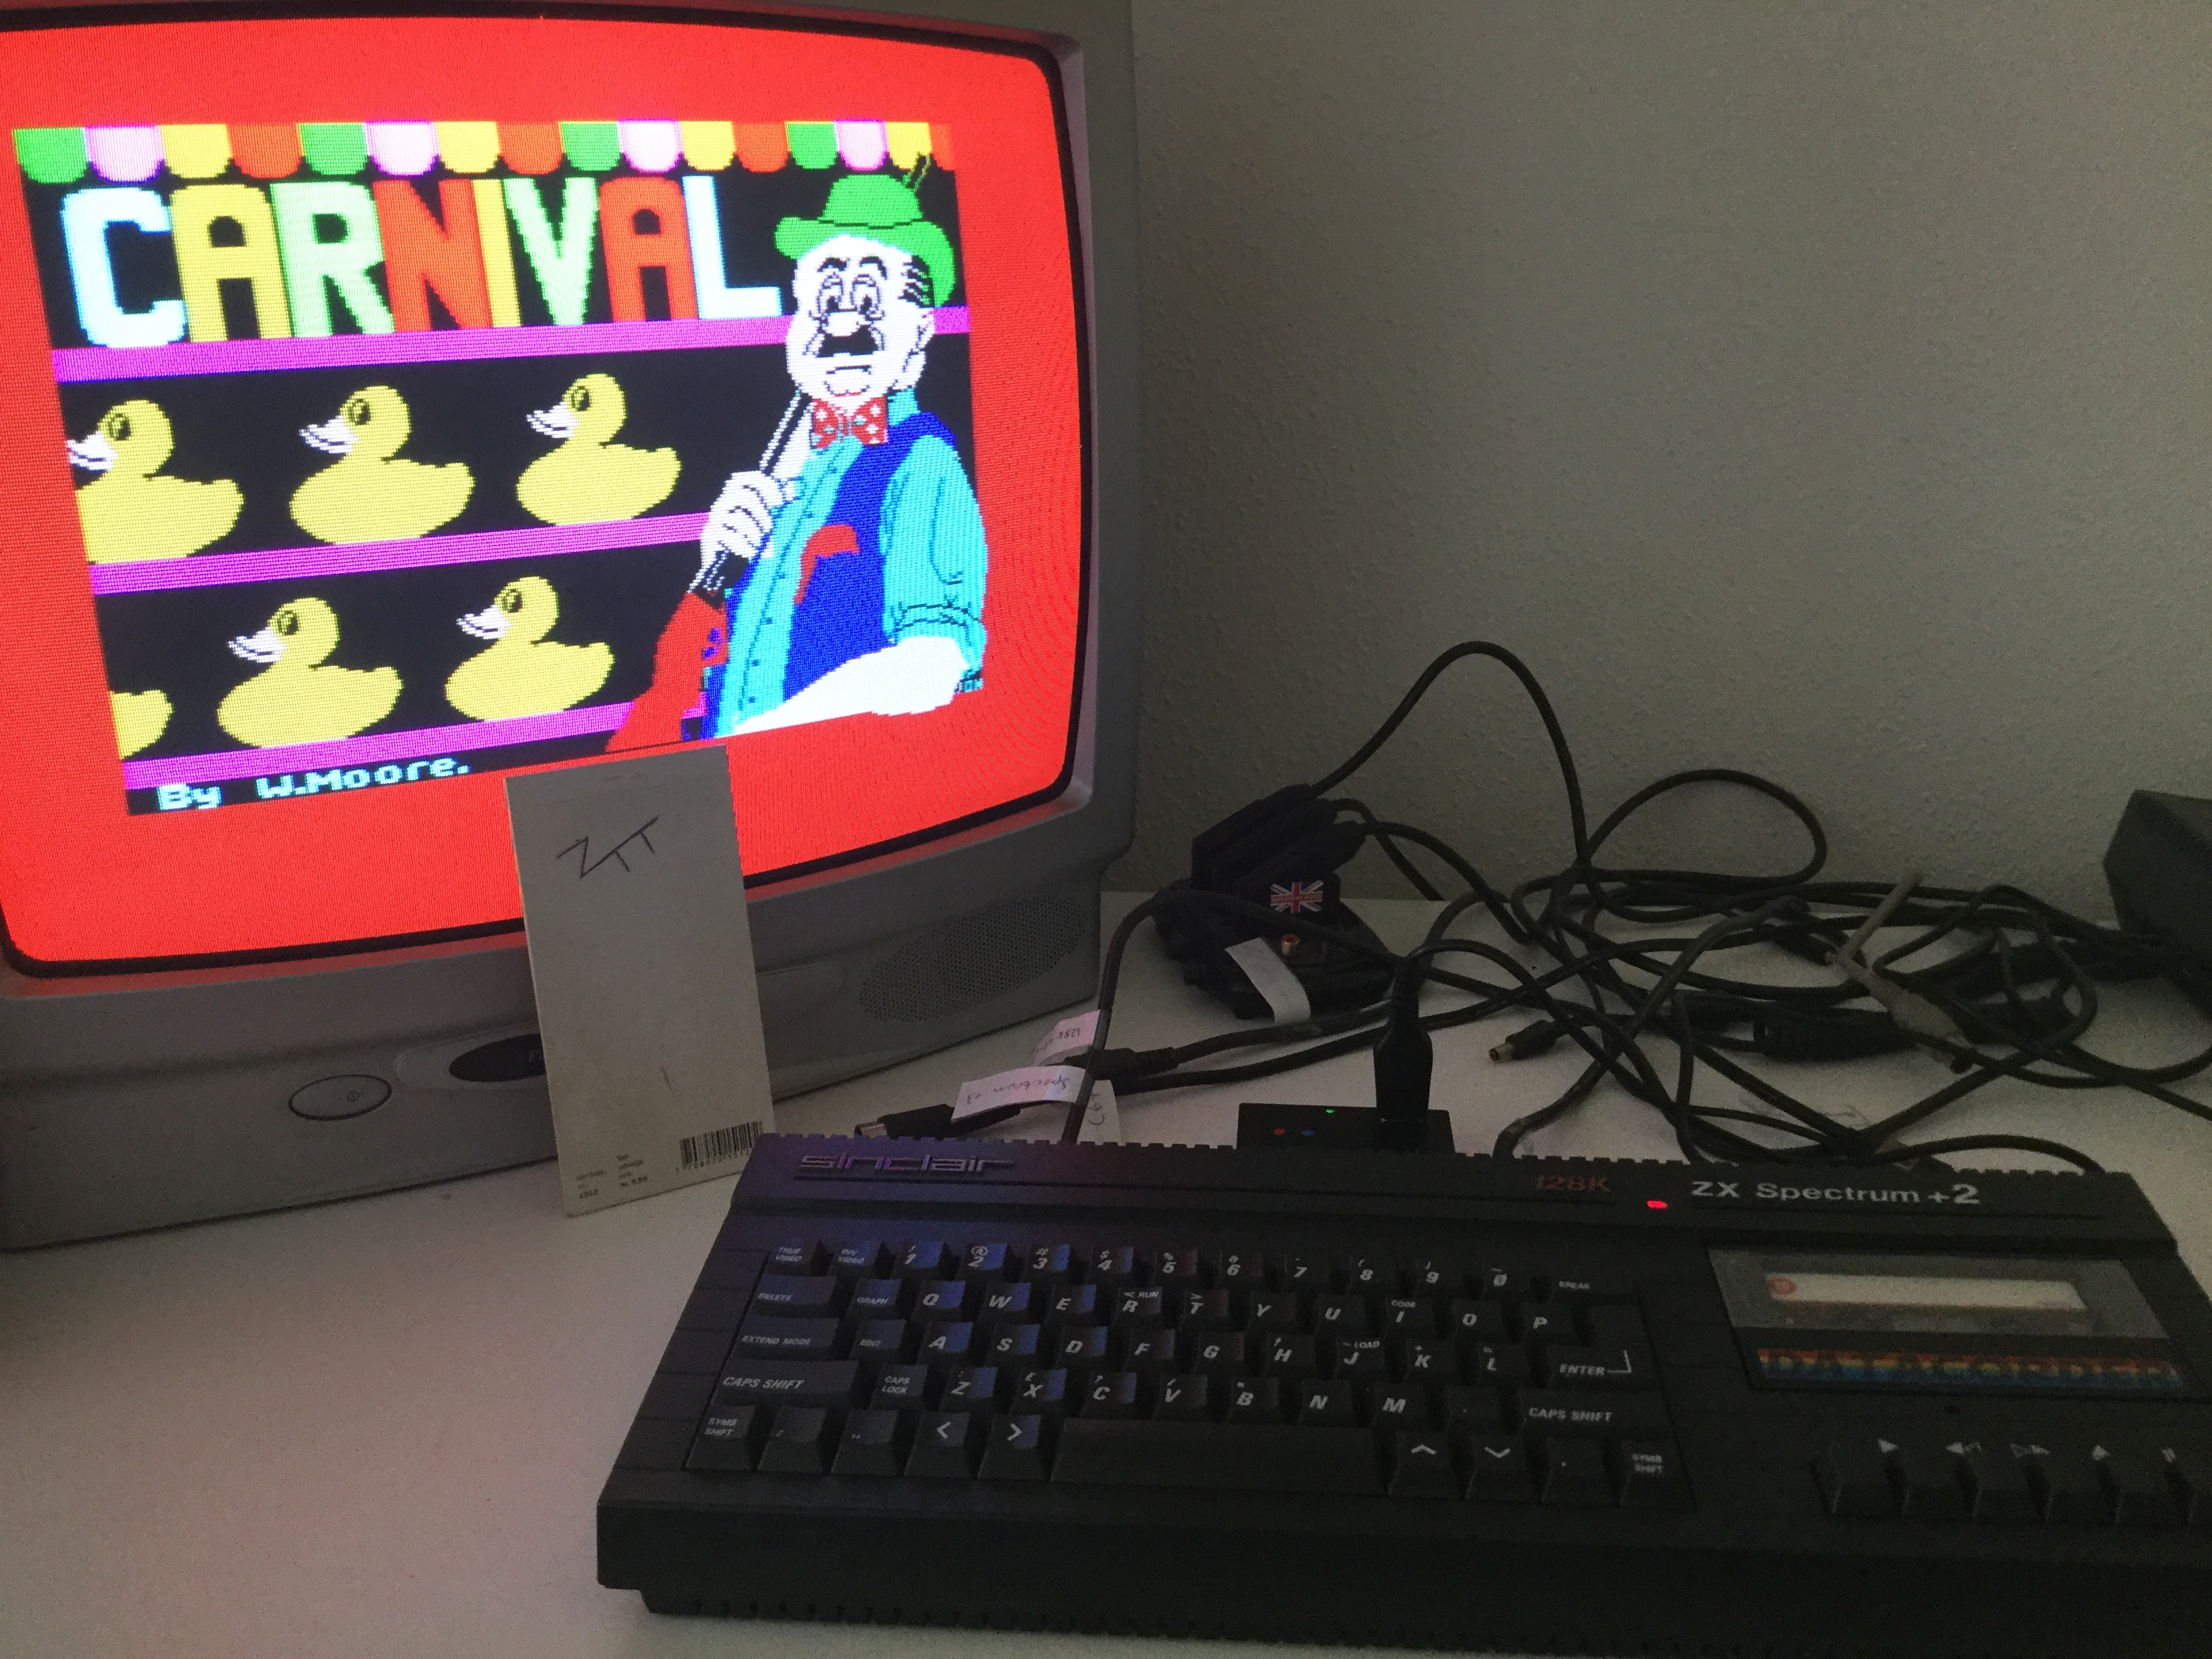 Frankie: Carnival [Eclipse Software] [Level 1] (ZX Spectrum) 25,970 points on 2018-08-05 06:13:38